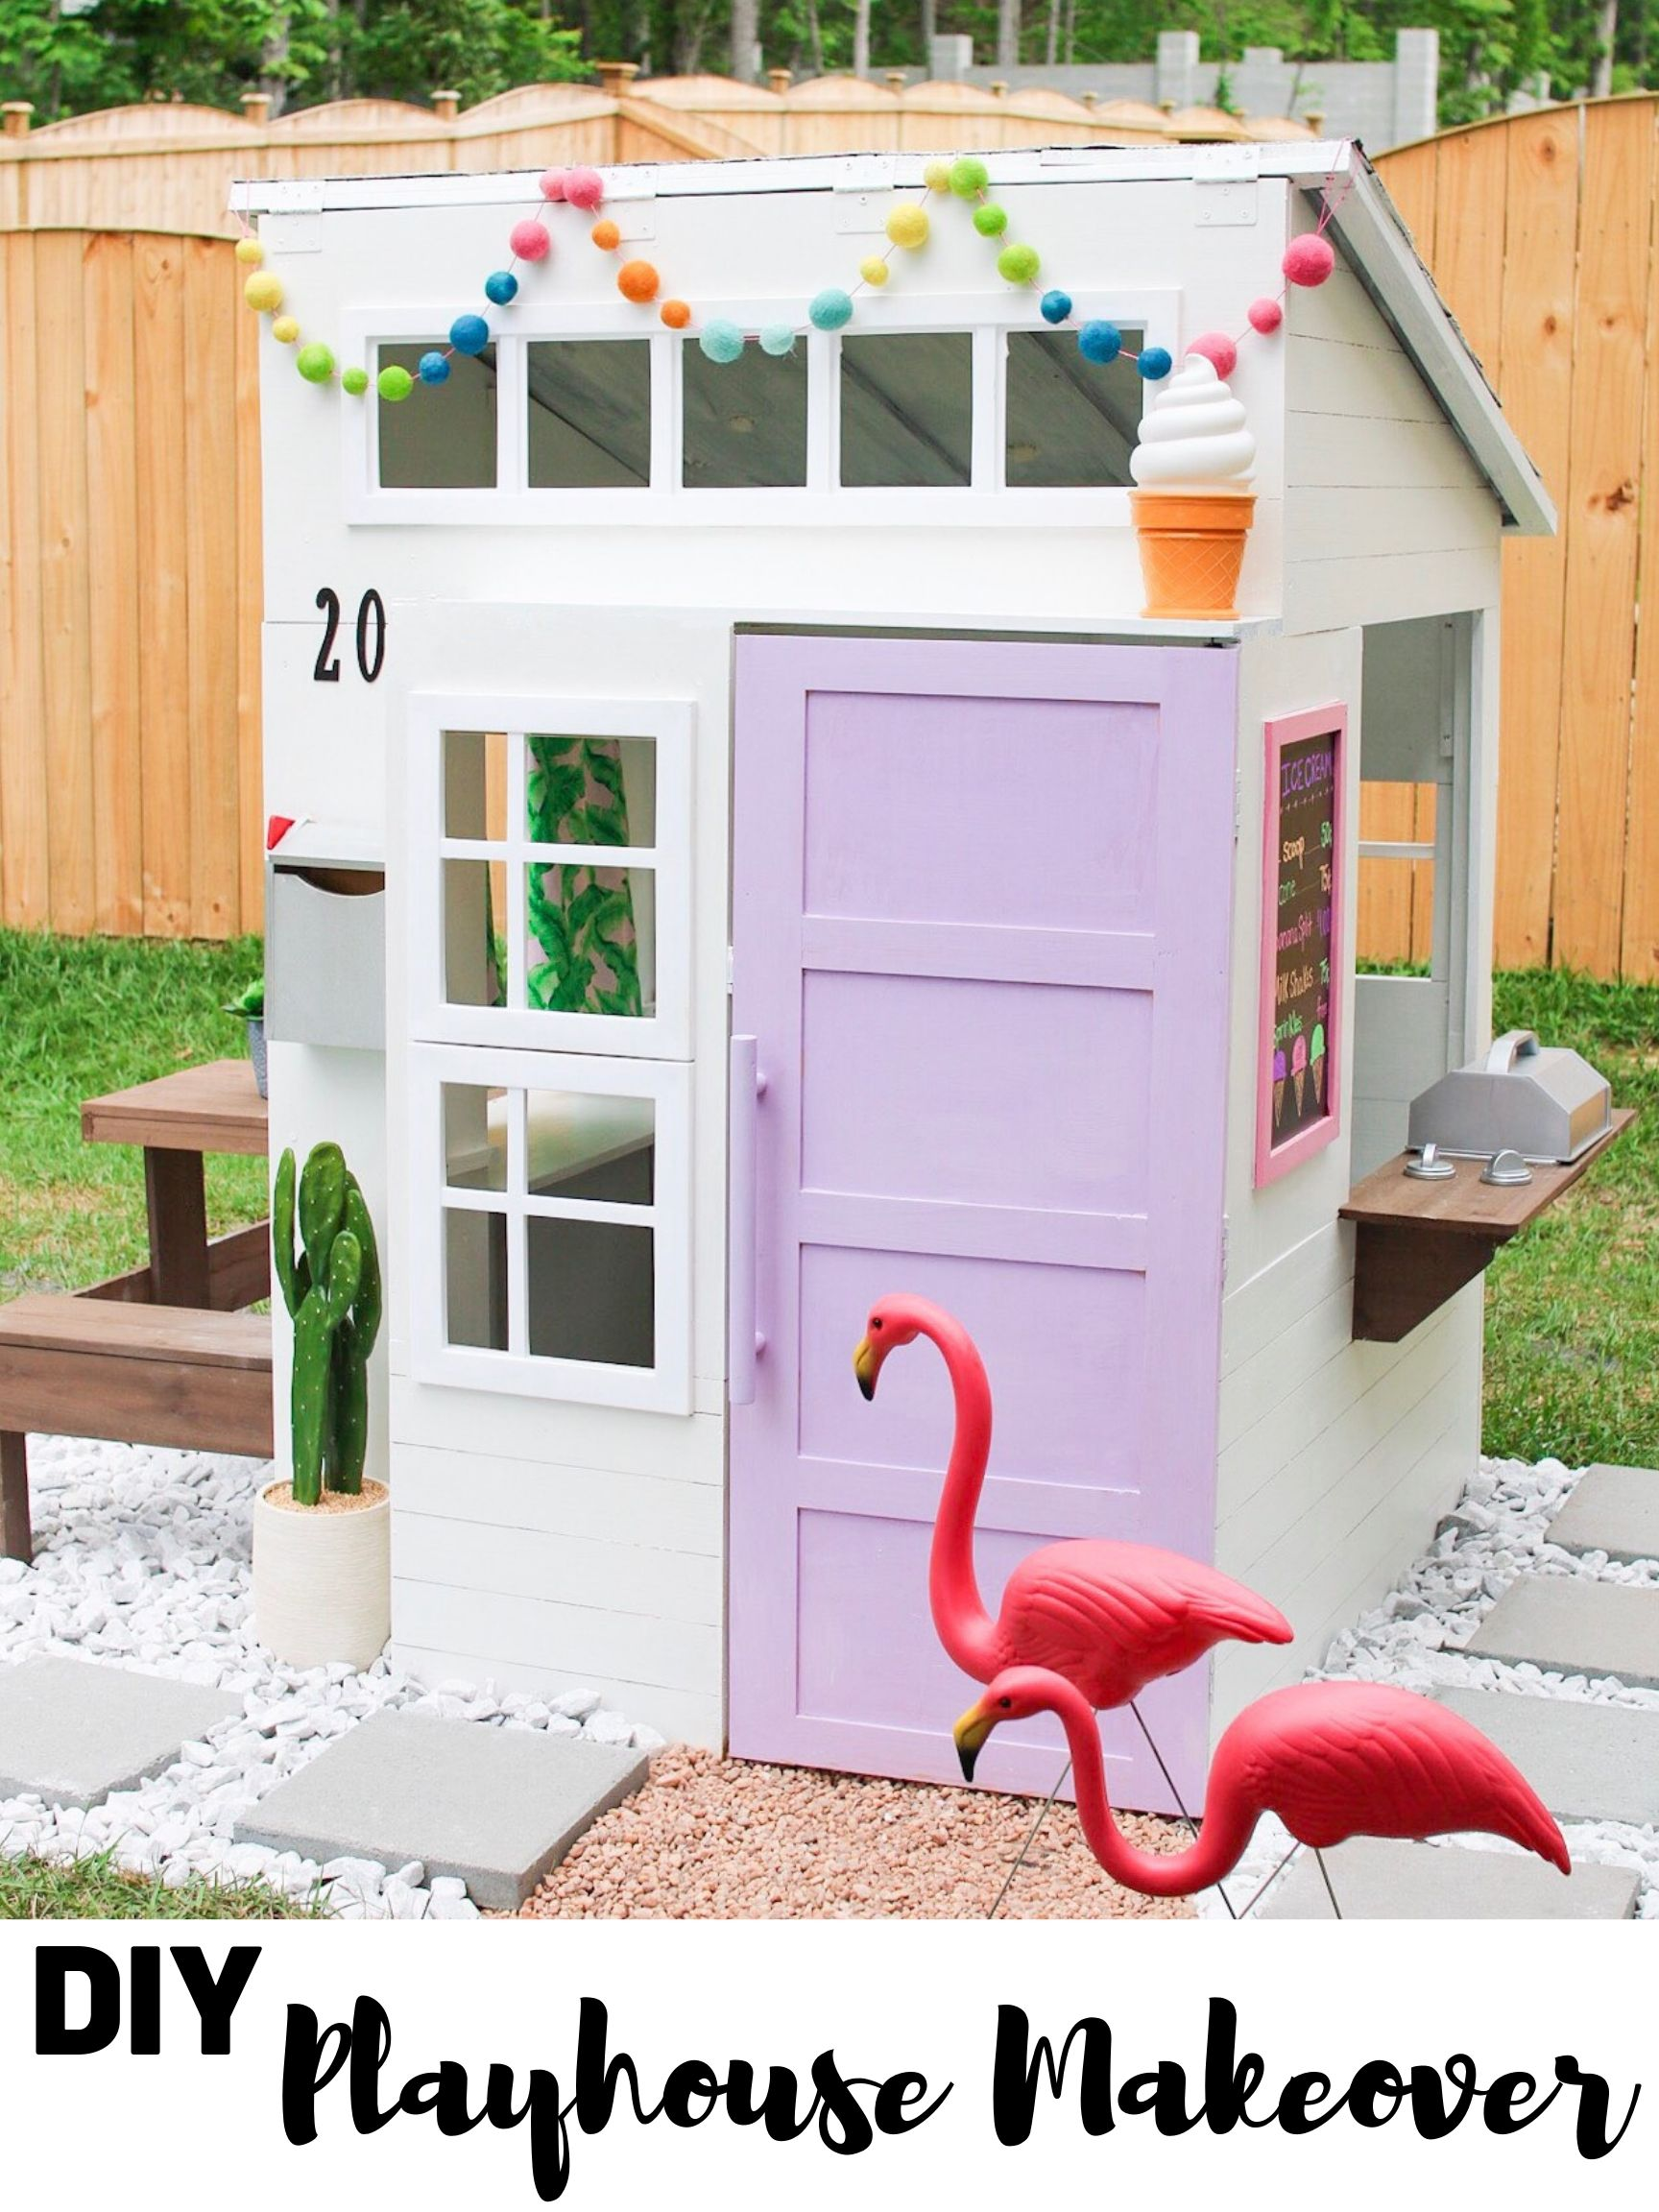 Diy Ice Cream Shop Playhouse Kristen Harrison Play Houses Playhouse Outdoor Build A Playhouse